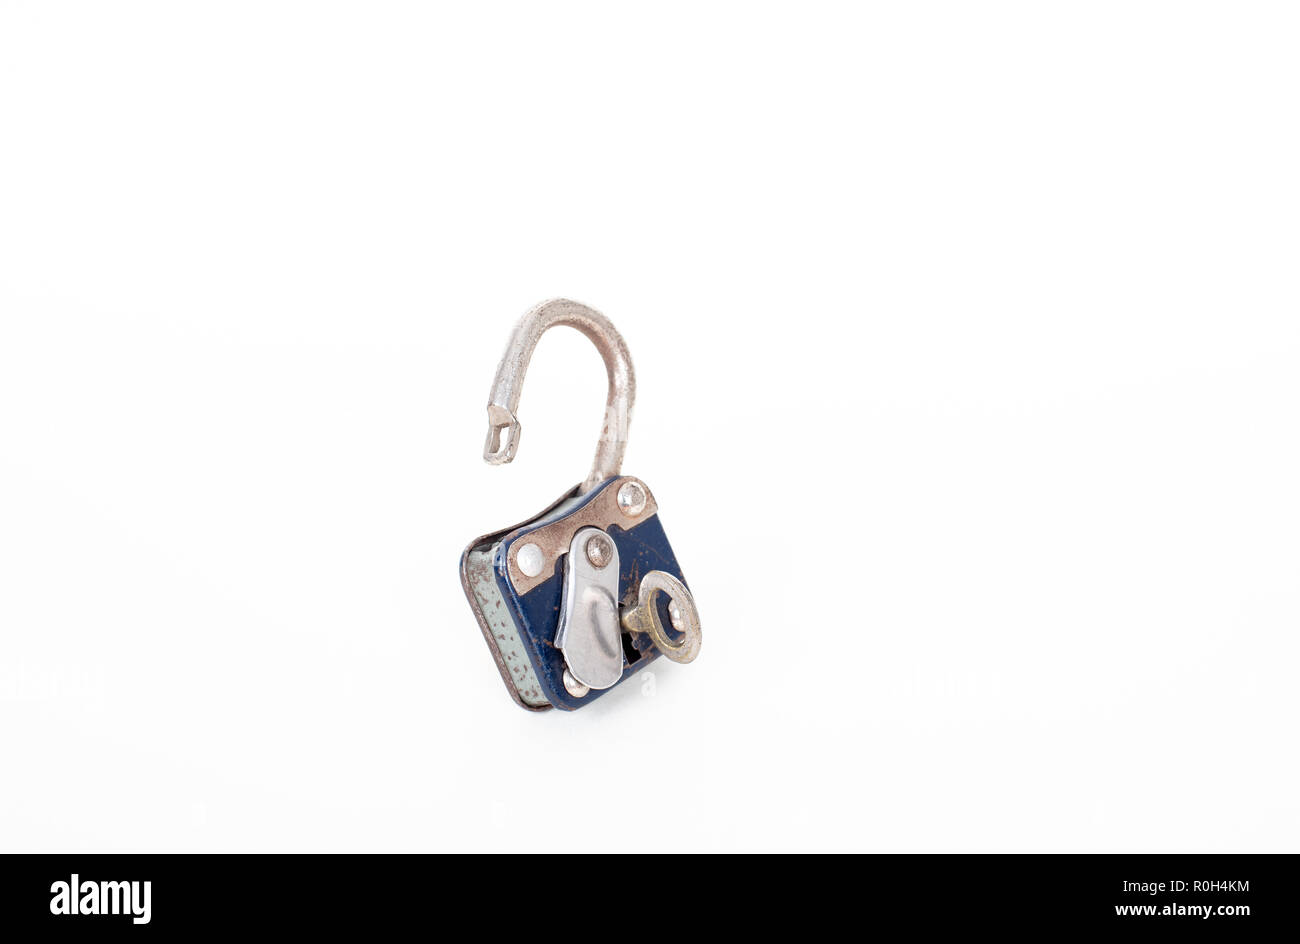 Vintage rusty padlock and key  isolated on white background with copy space Stock Photo